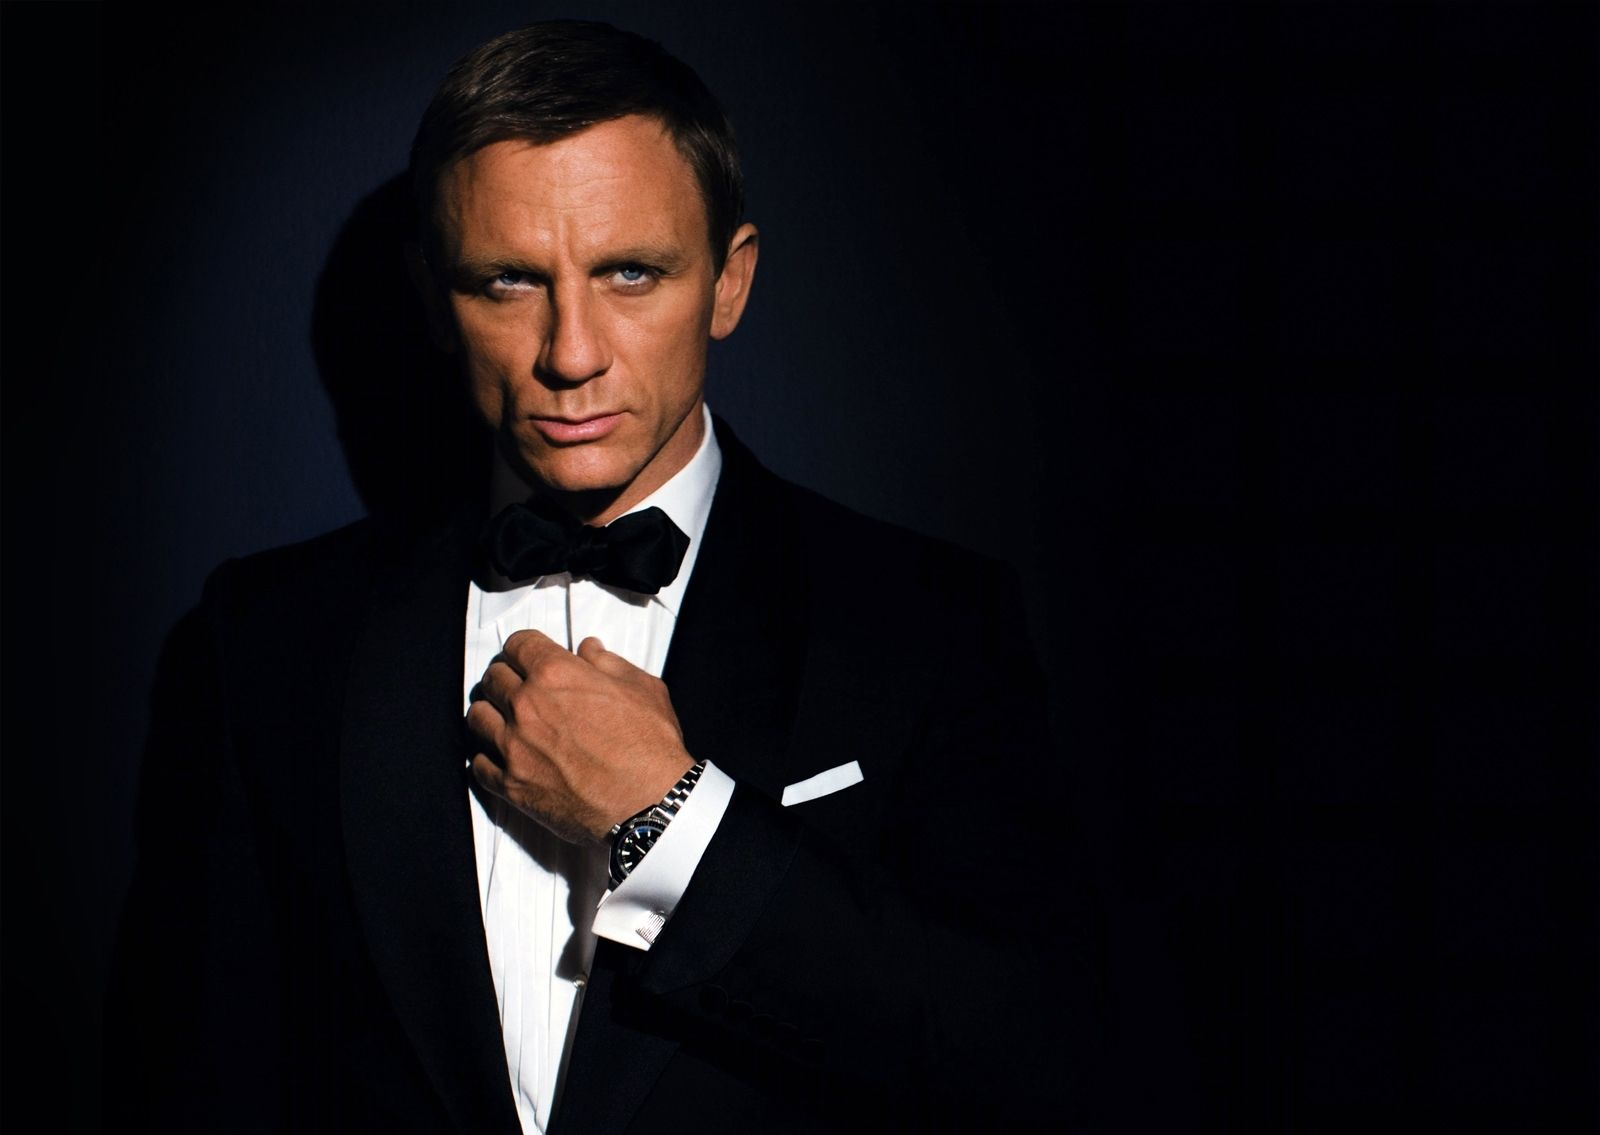 El musical de James Bond llegará a Broadway